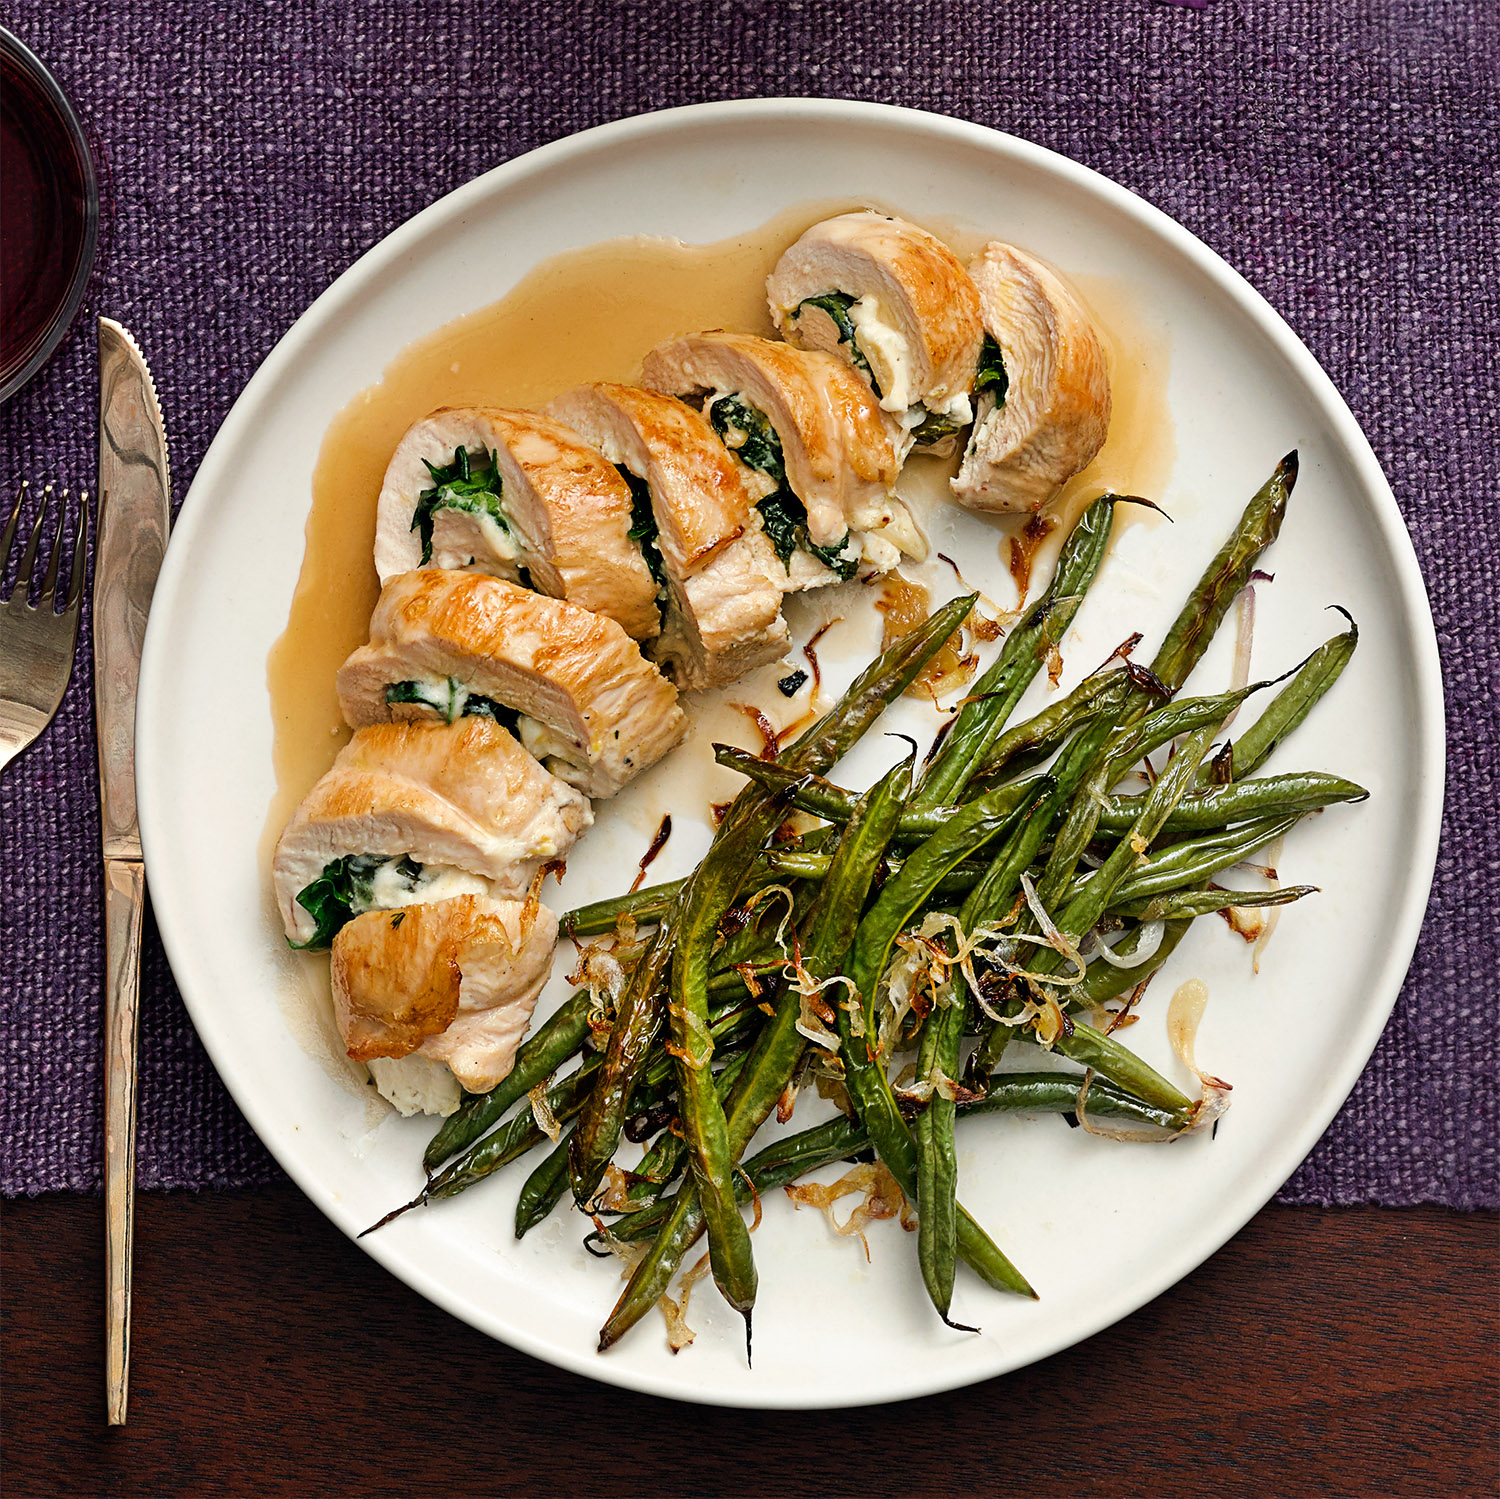 Stuffed Chicken Pinwheels with Roasted Green Beans